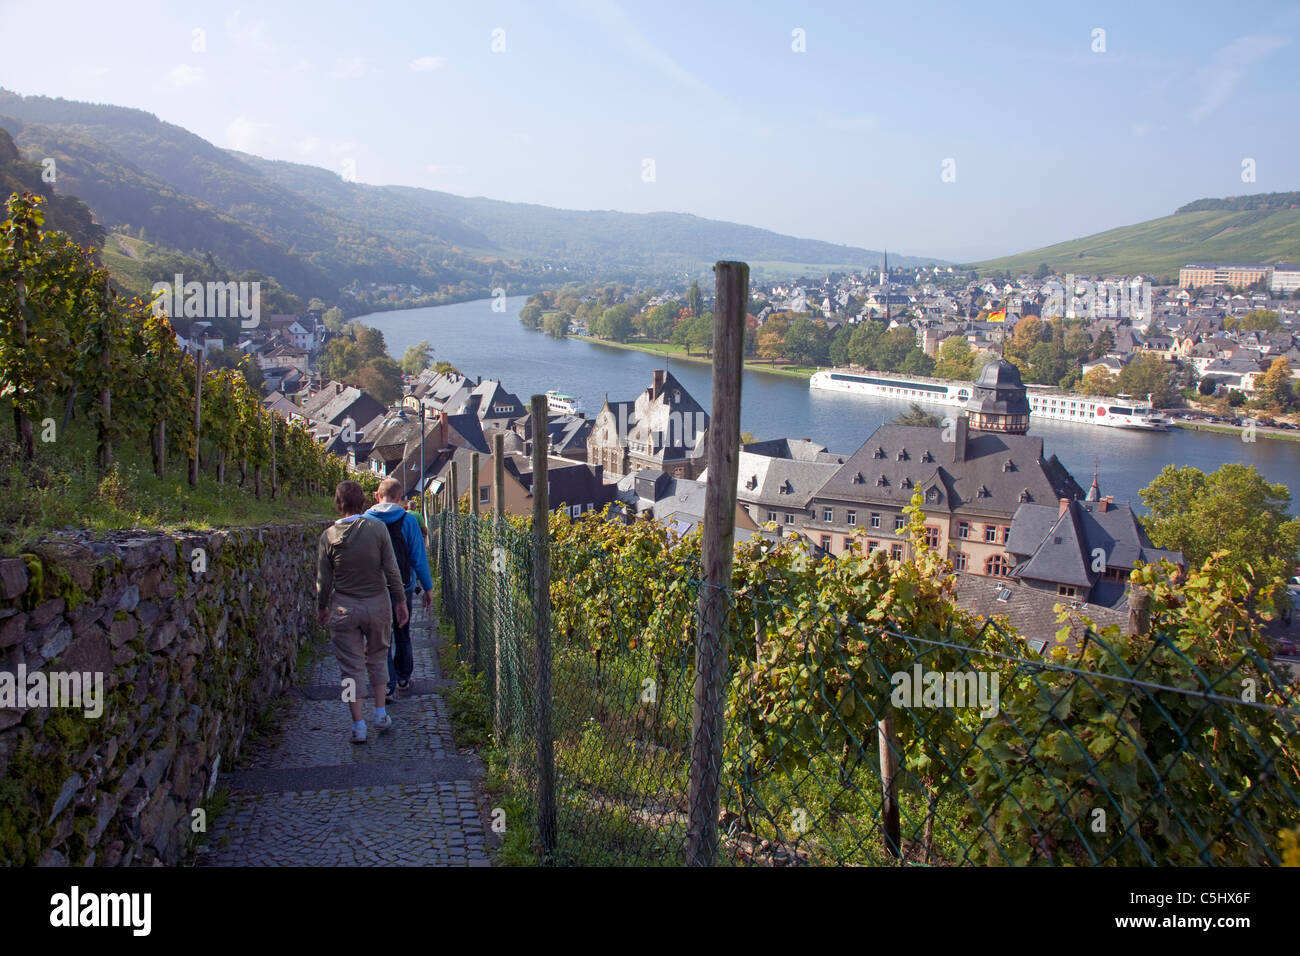 Blick von einem Wanderweg auf Mosel und Moseltal, View from a hiker trail over the Mosel valley and the river Moselle - Stock Image